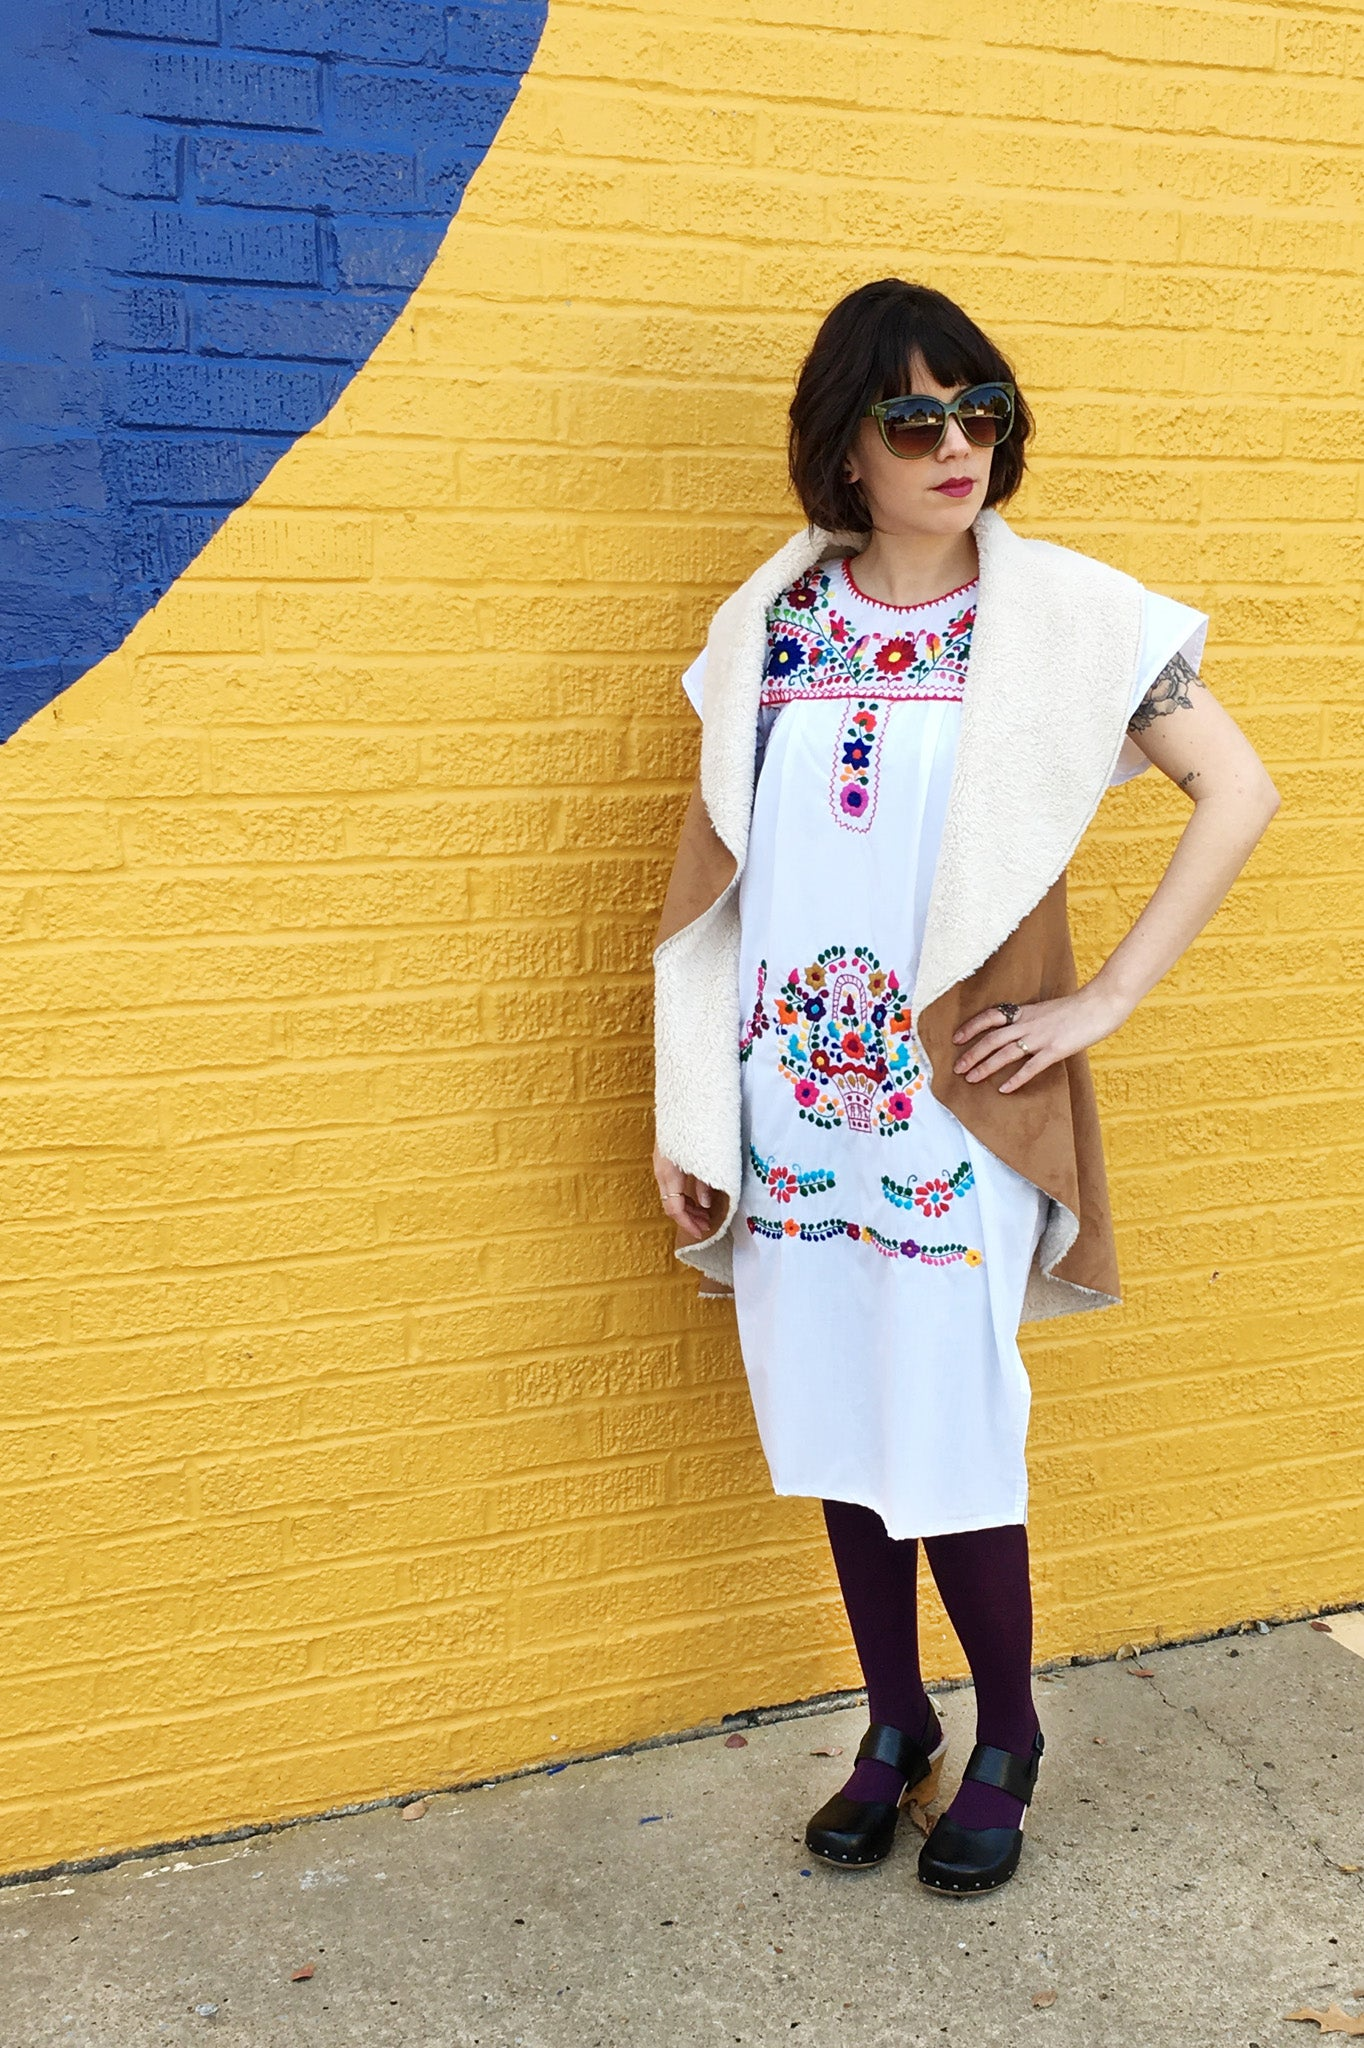 ShopMucho shares a how to style women's Mexican dresses all year round